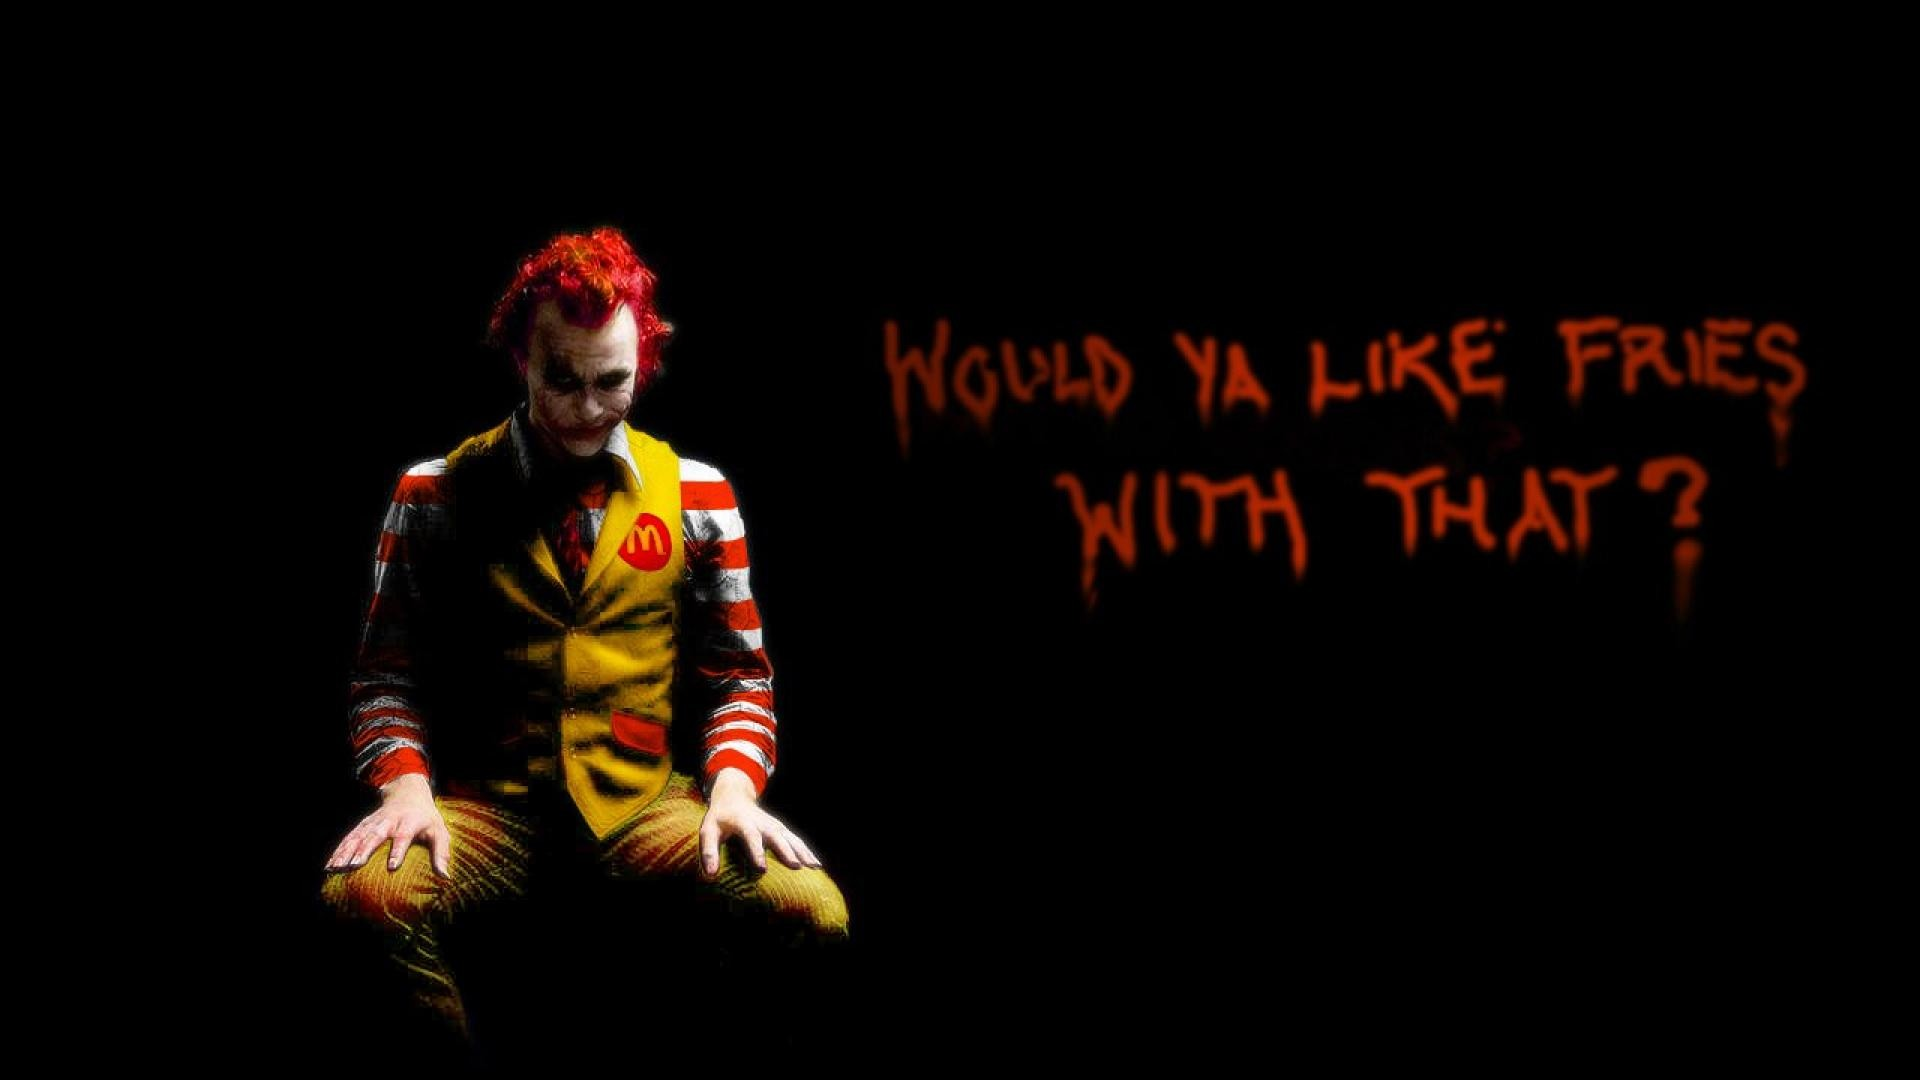 1920x1080 Batman quotes The Joker Ronald McDonald McDonalds / Wallpaper